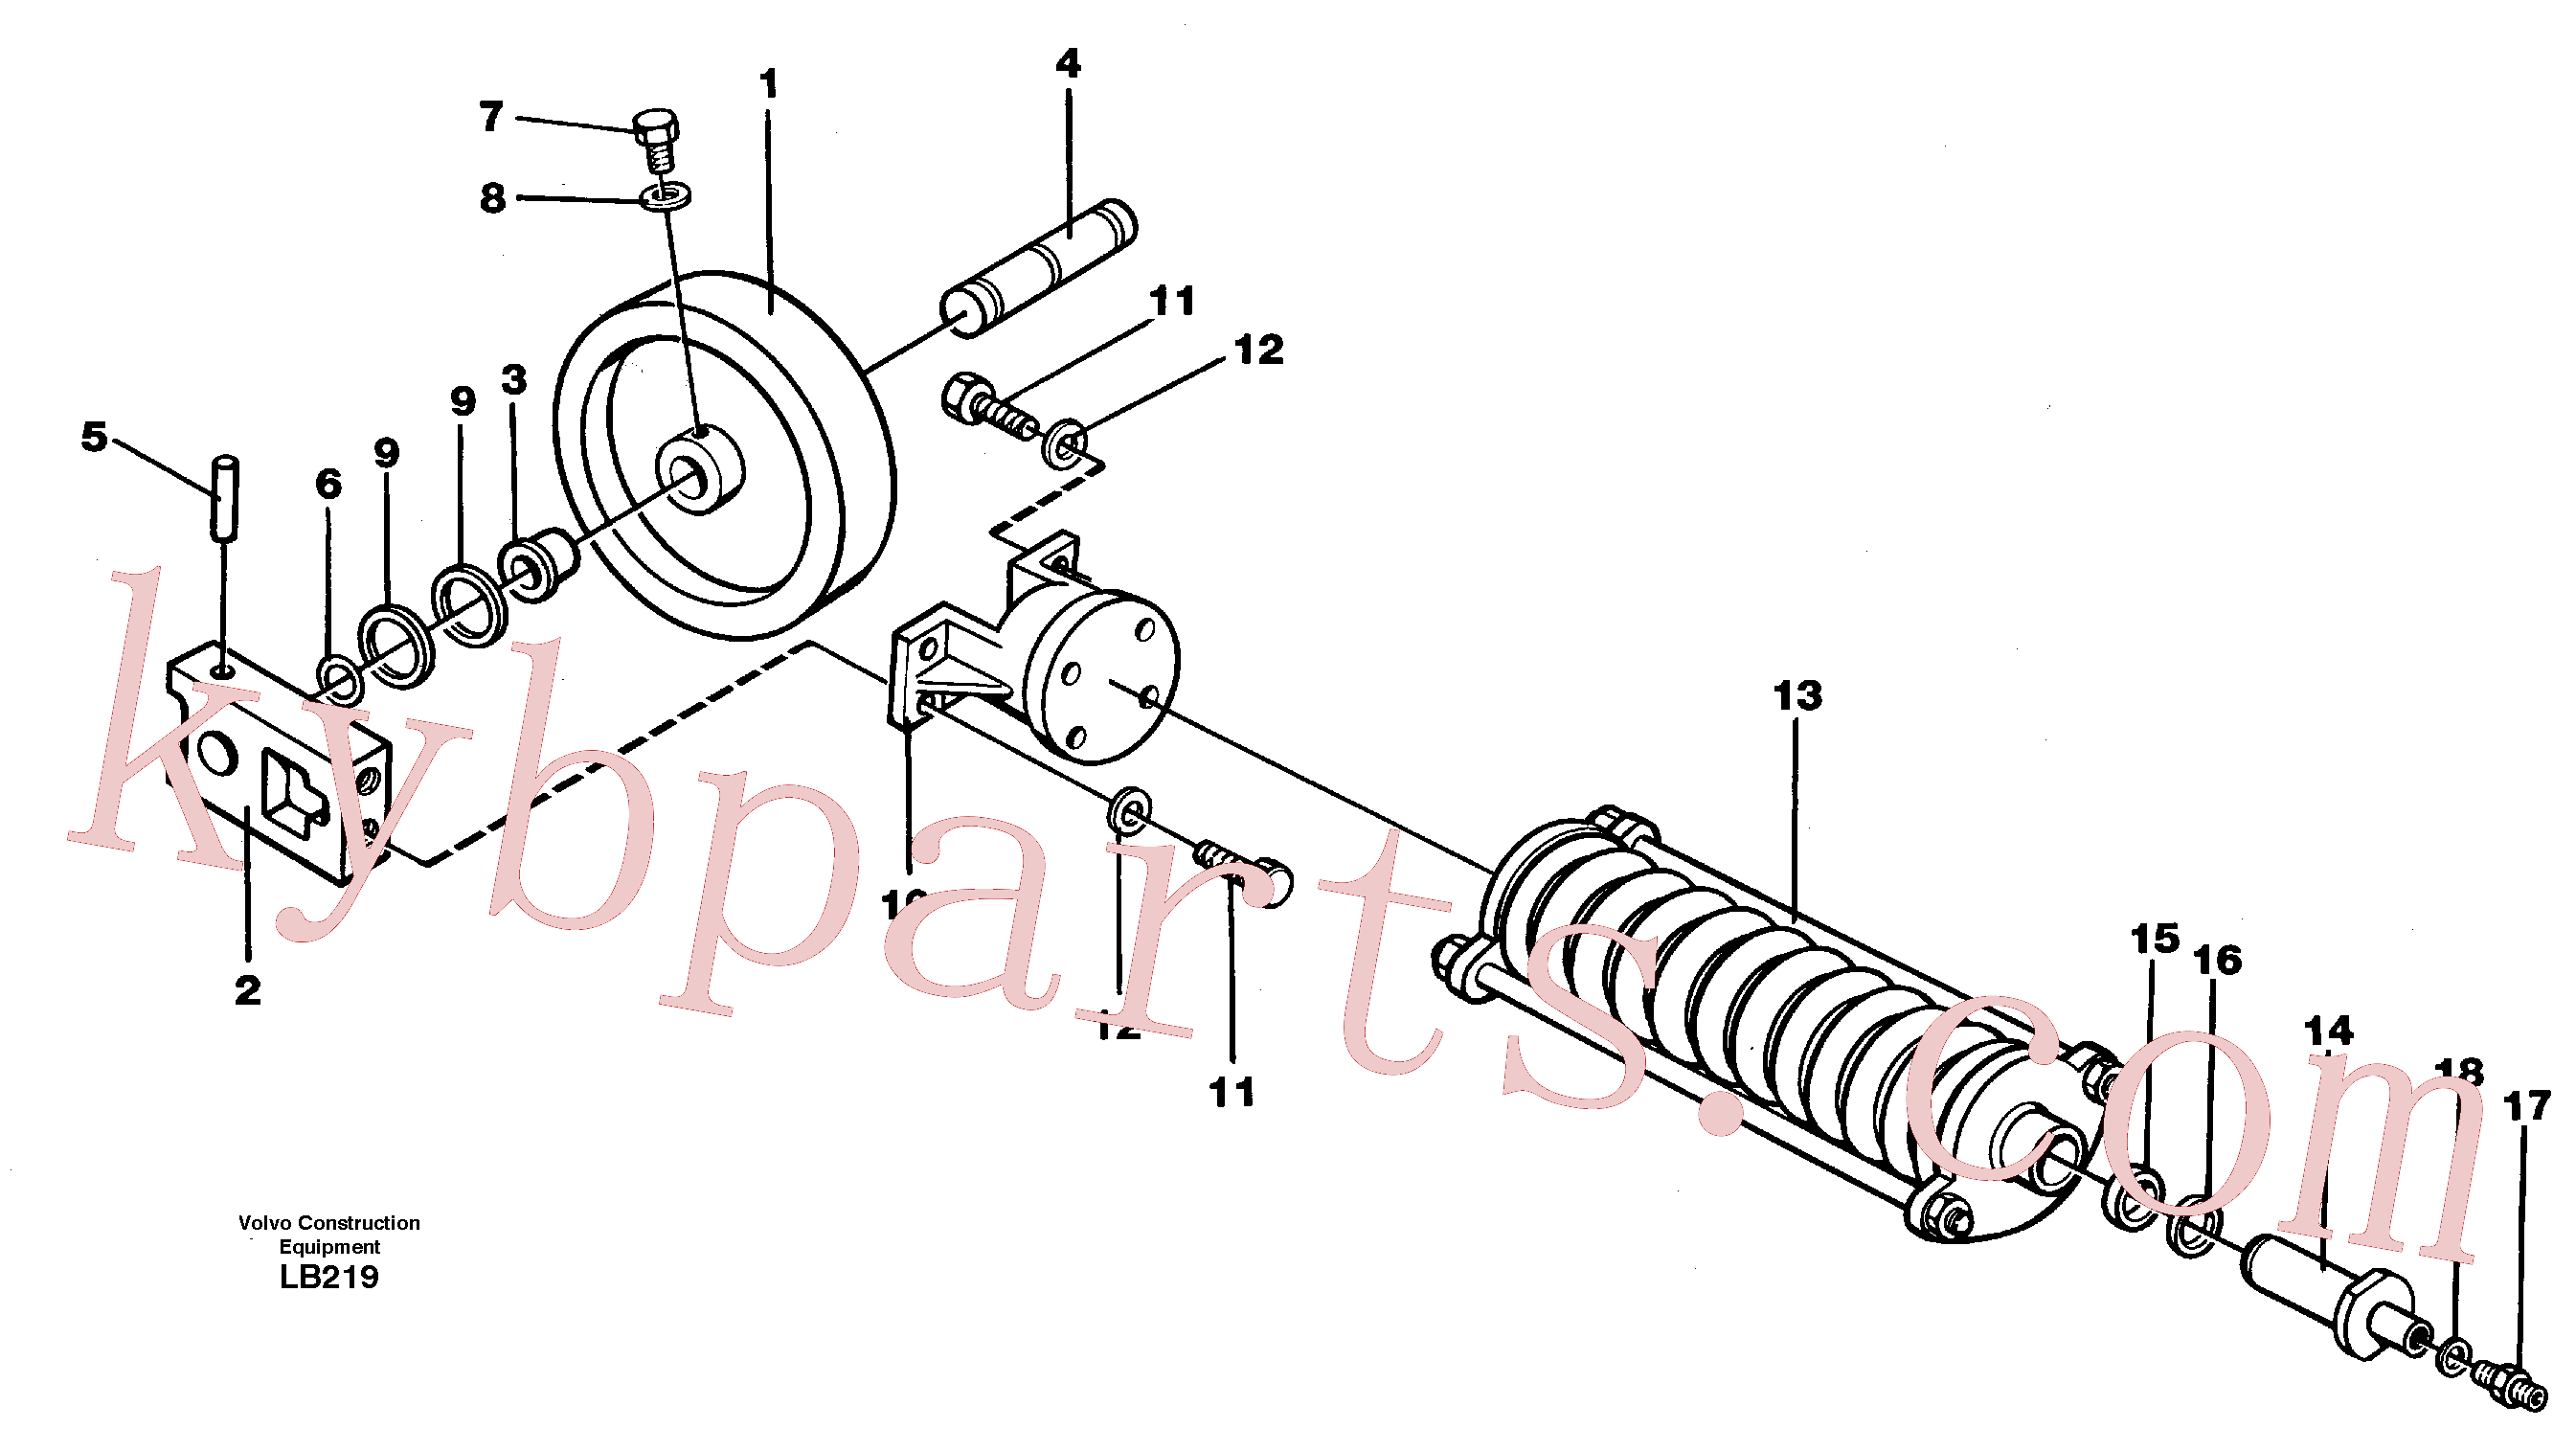 VOE944496 for Volvo Front wheel, spring package and tension cylinder(LB219 assembly)